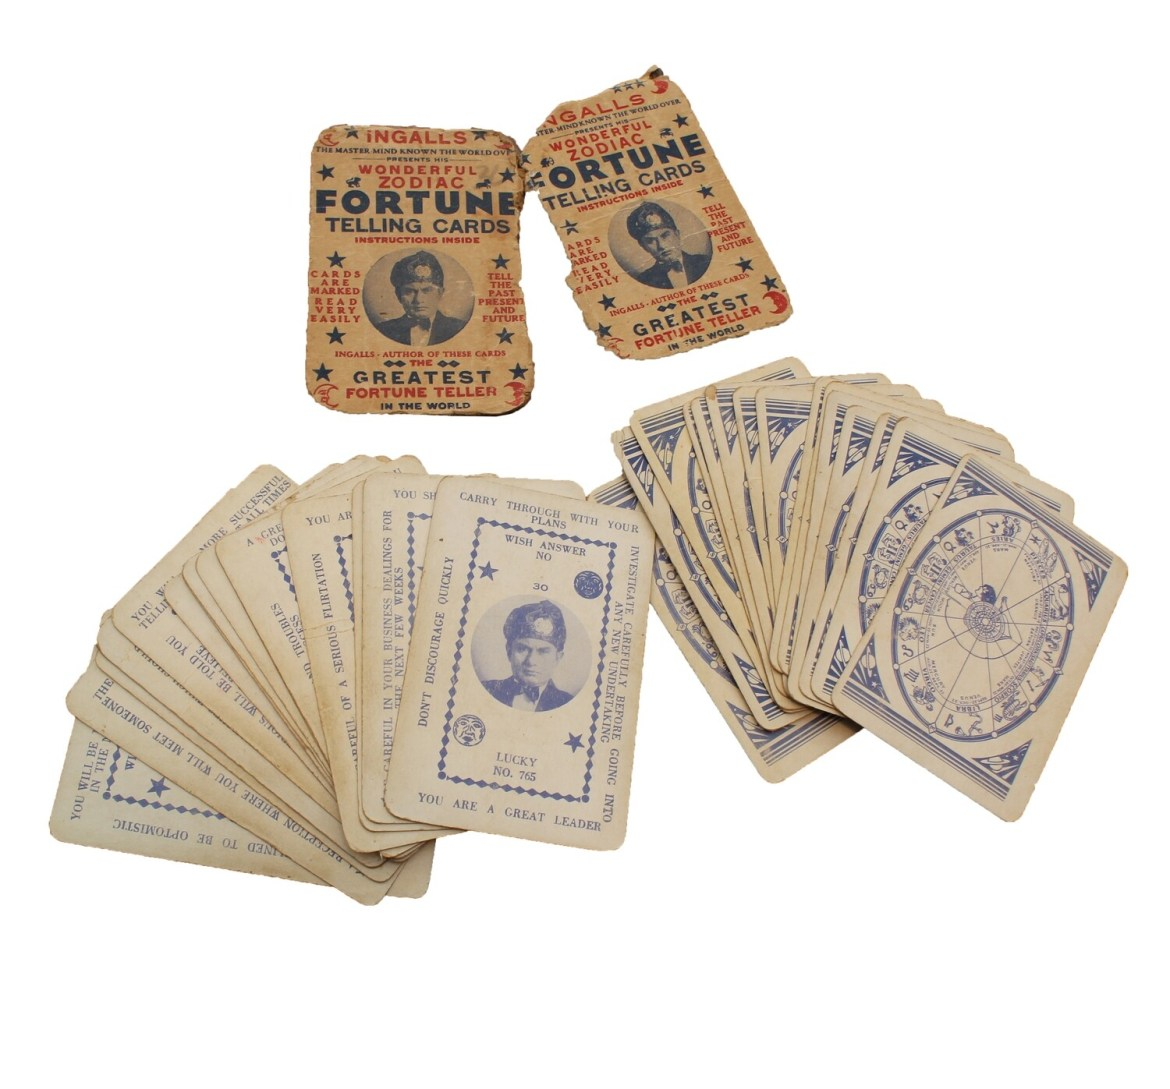 Ingall's Zodiac Fortune Telling Cards